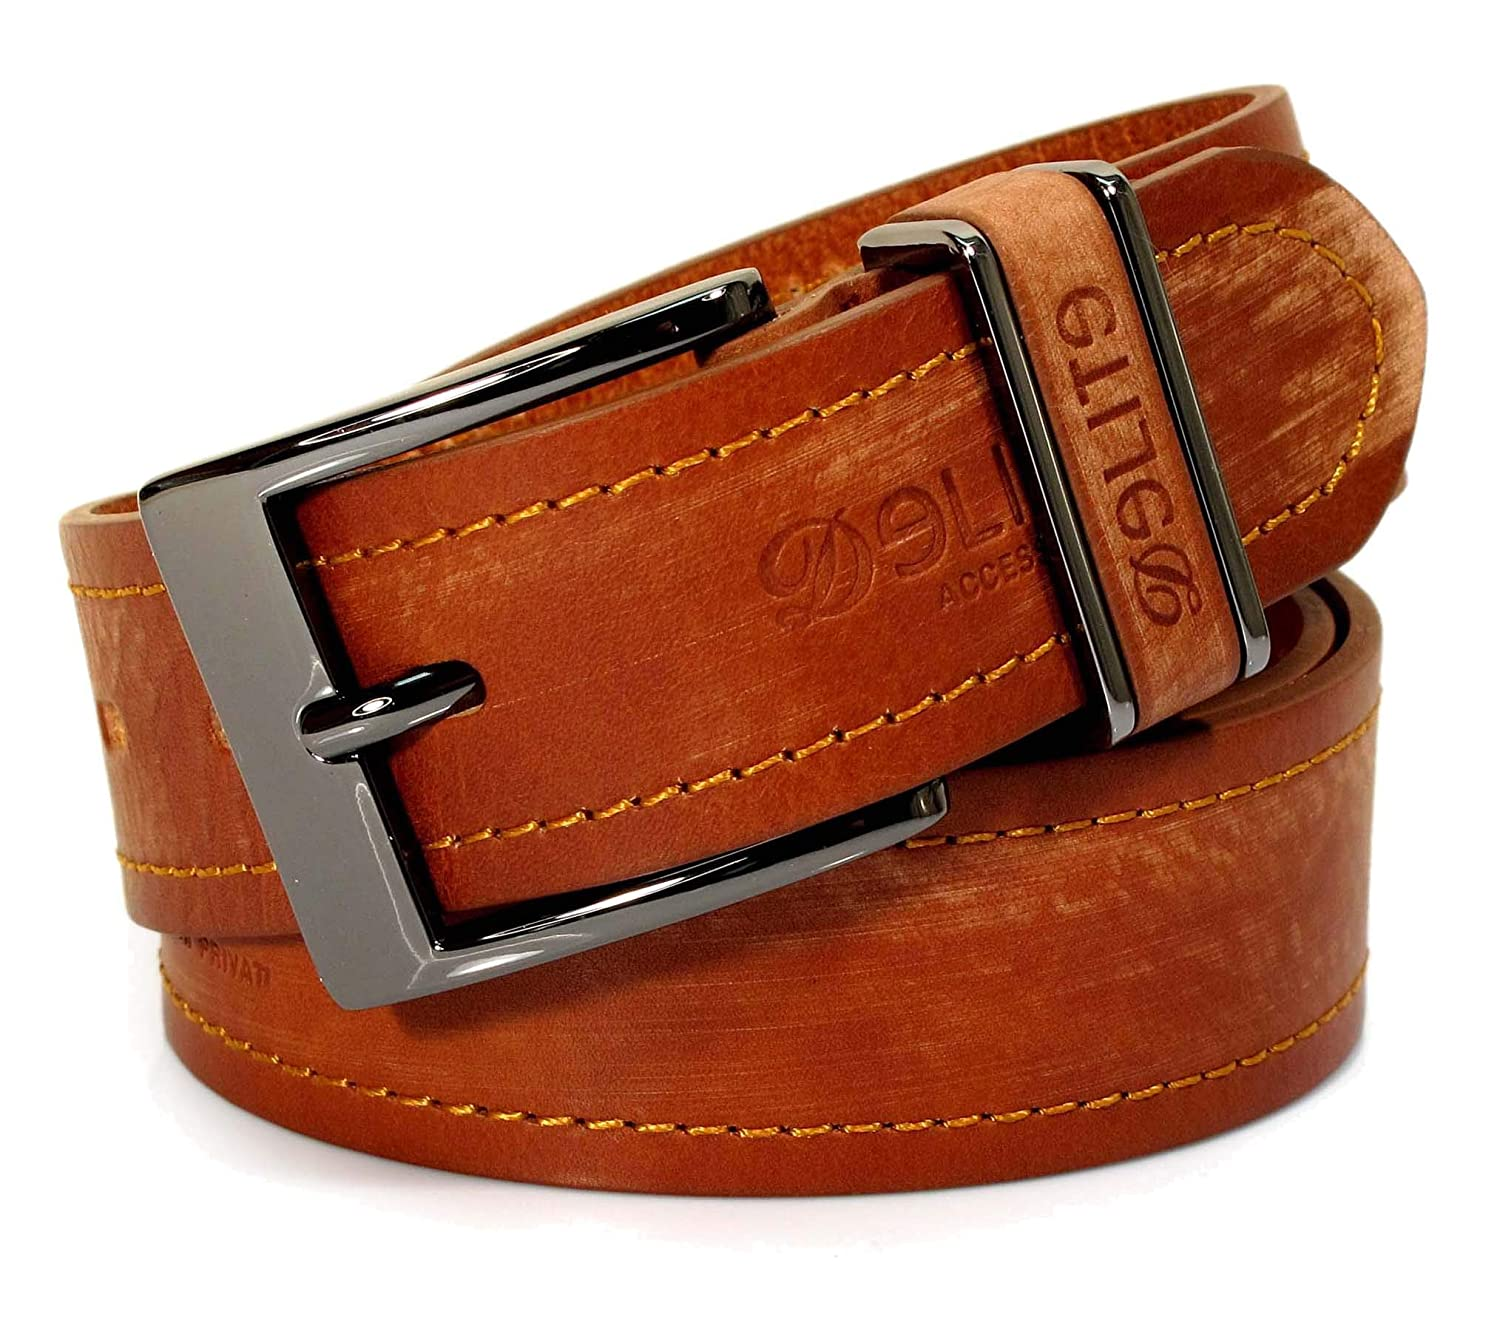 Womens Real Genuine Leather Belt Black Brown White 1.5 Wide S-XL Casual Jeans TU4